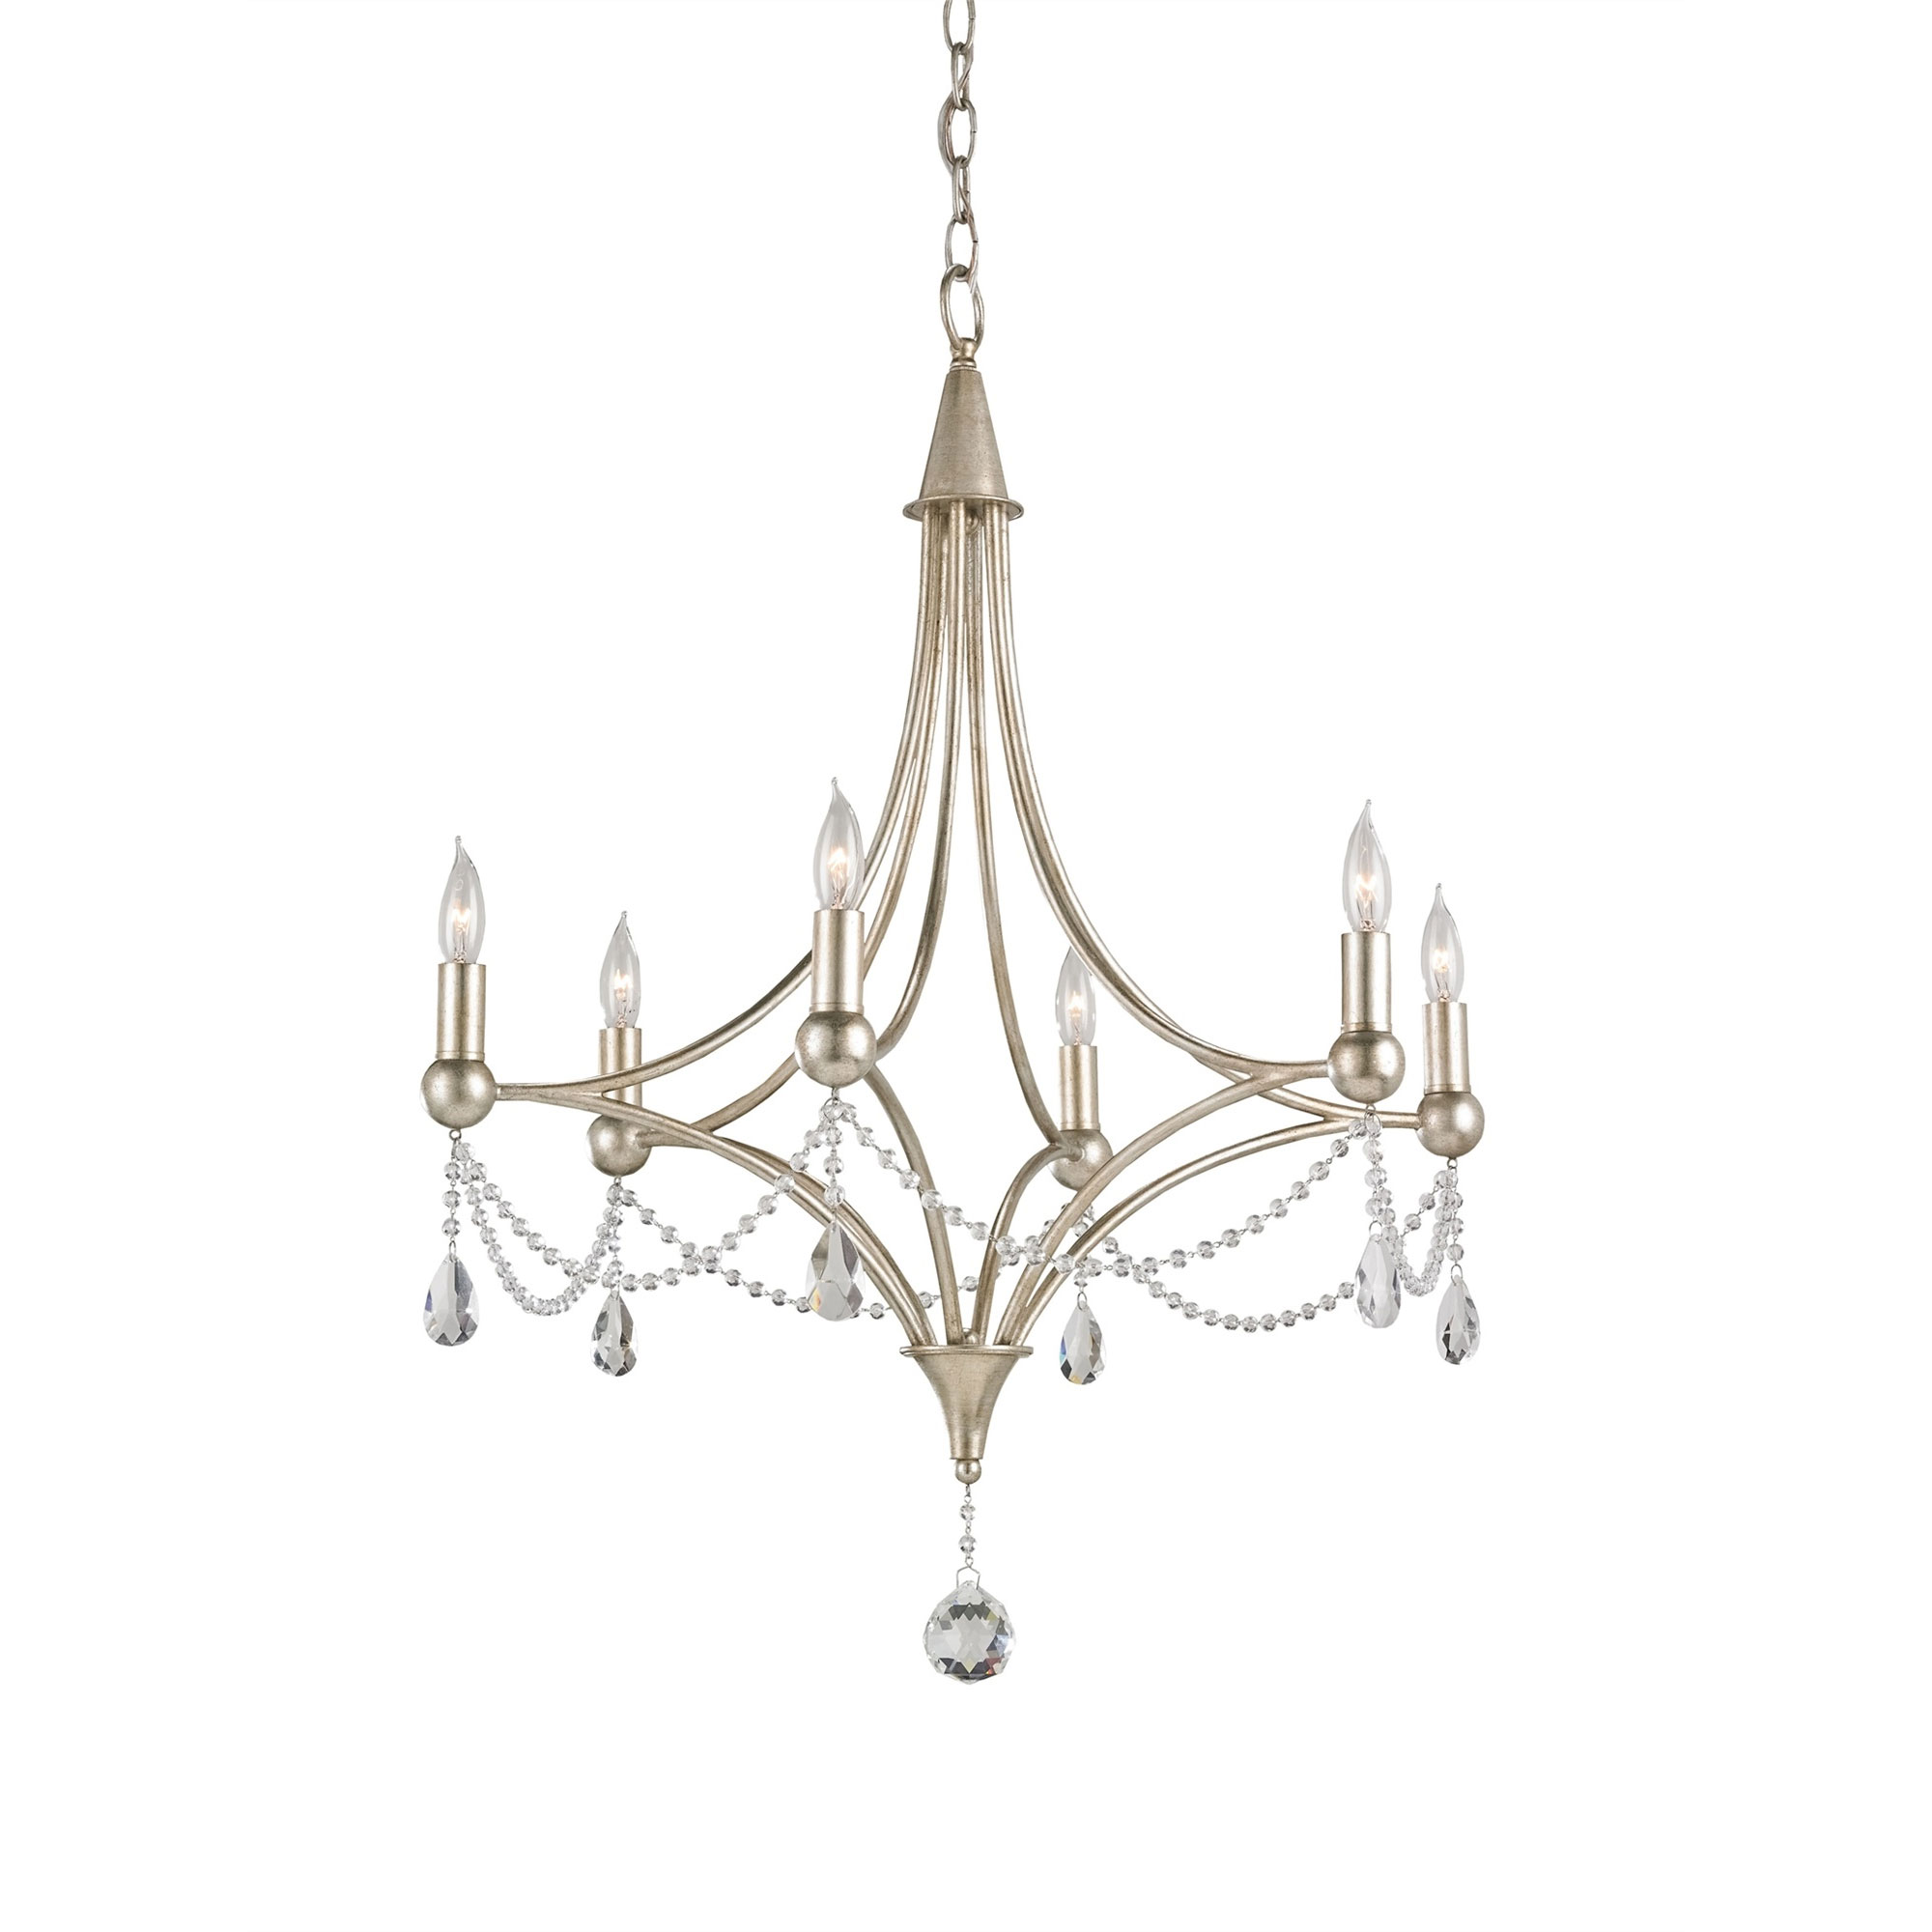 Currey And Company Orb Chandelier: Etiquette Chandelier By Currey And Company